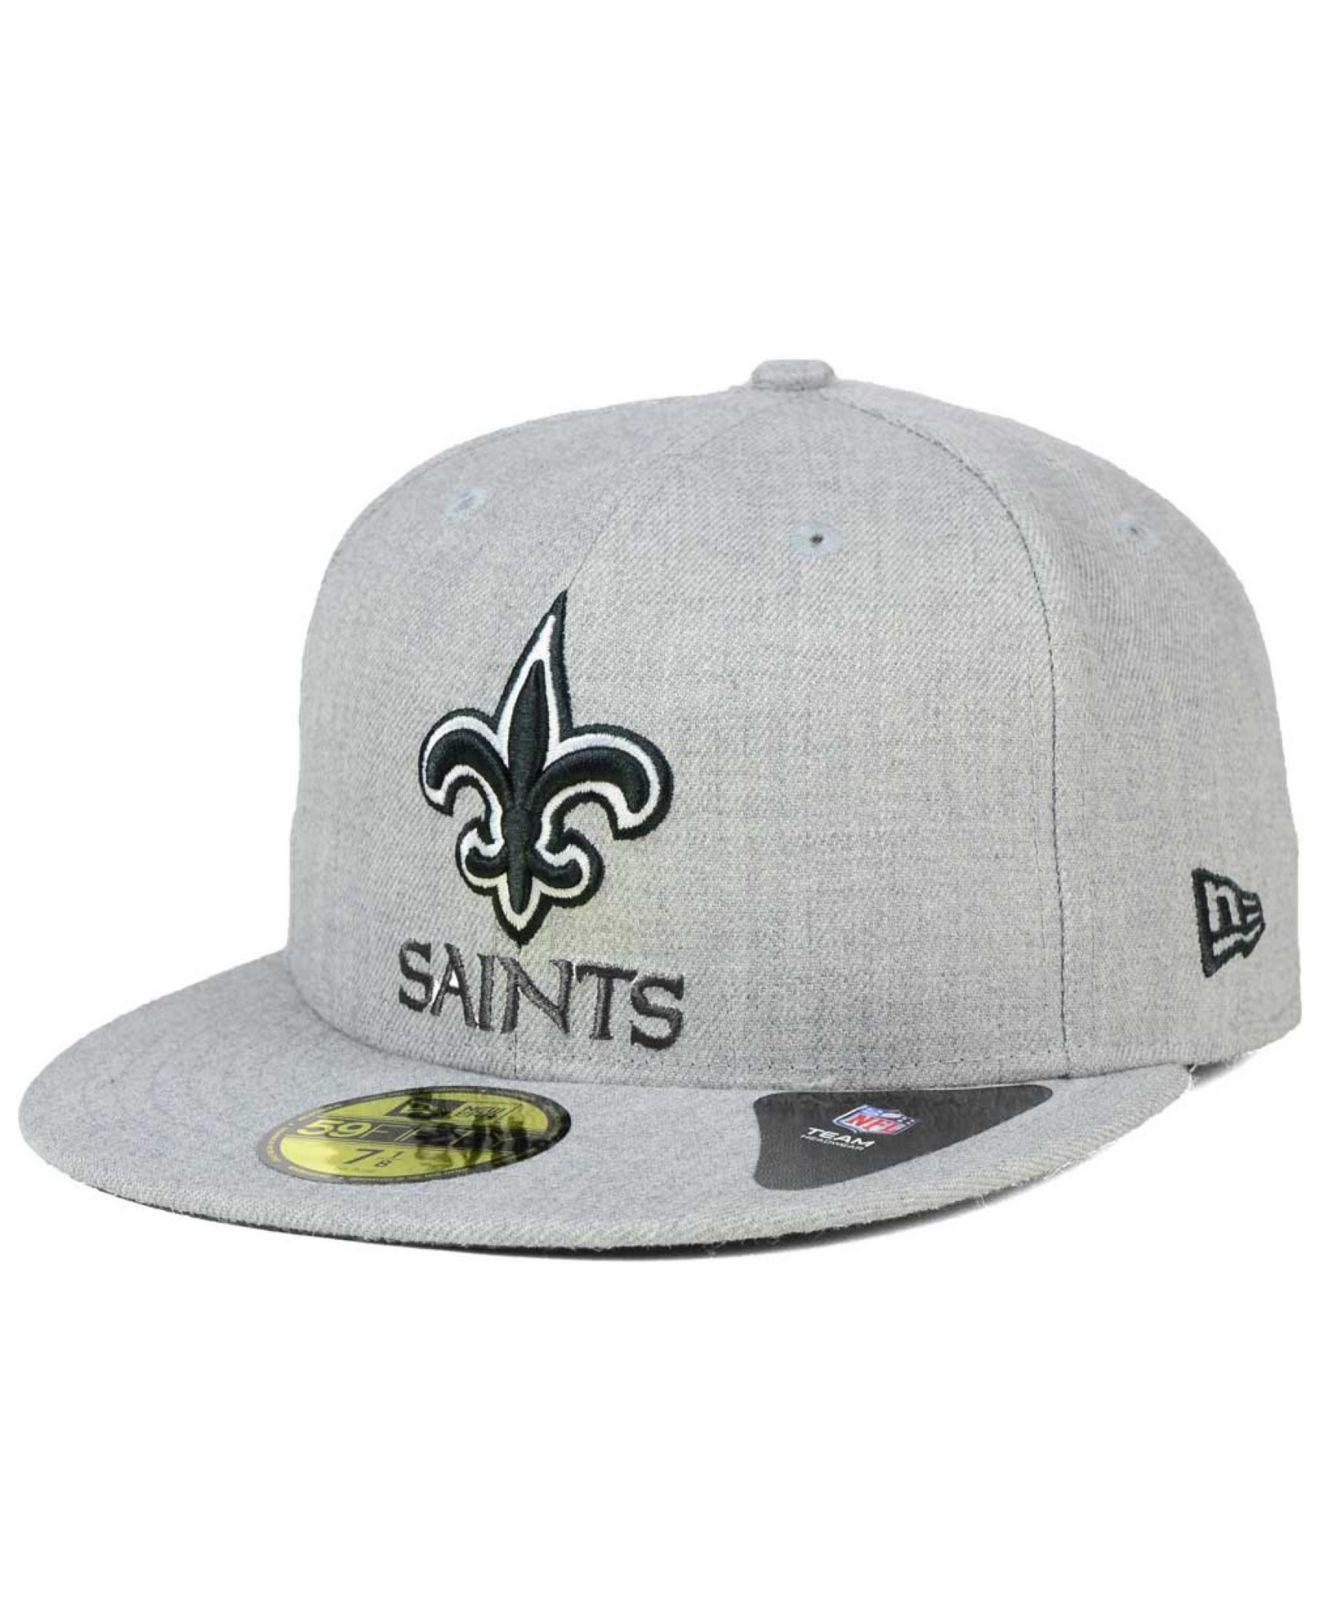 8682ccfe008 KTZ - Gray New Orleans Saints Heather Black White 59fifty Fitted Cap for  Men - Lyst. View fullscreen